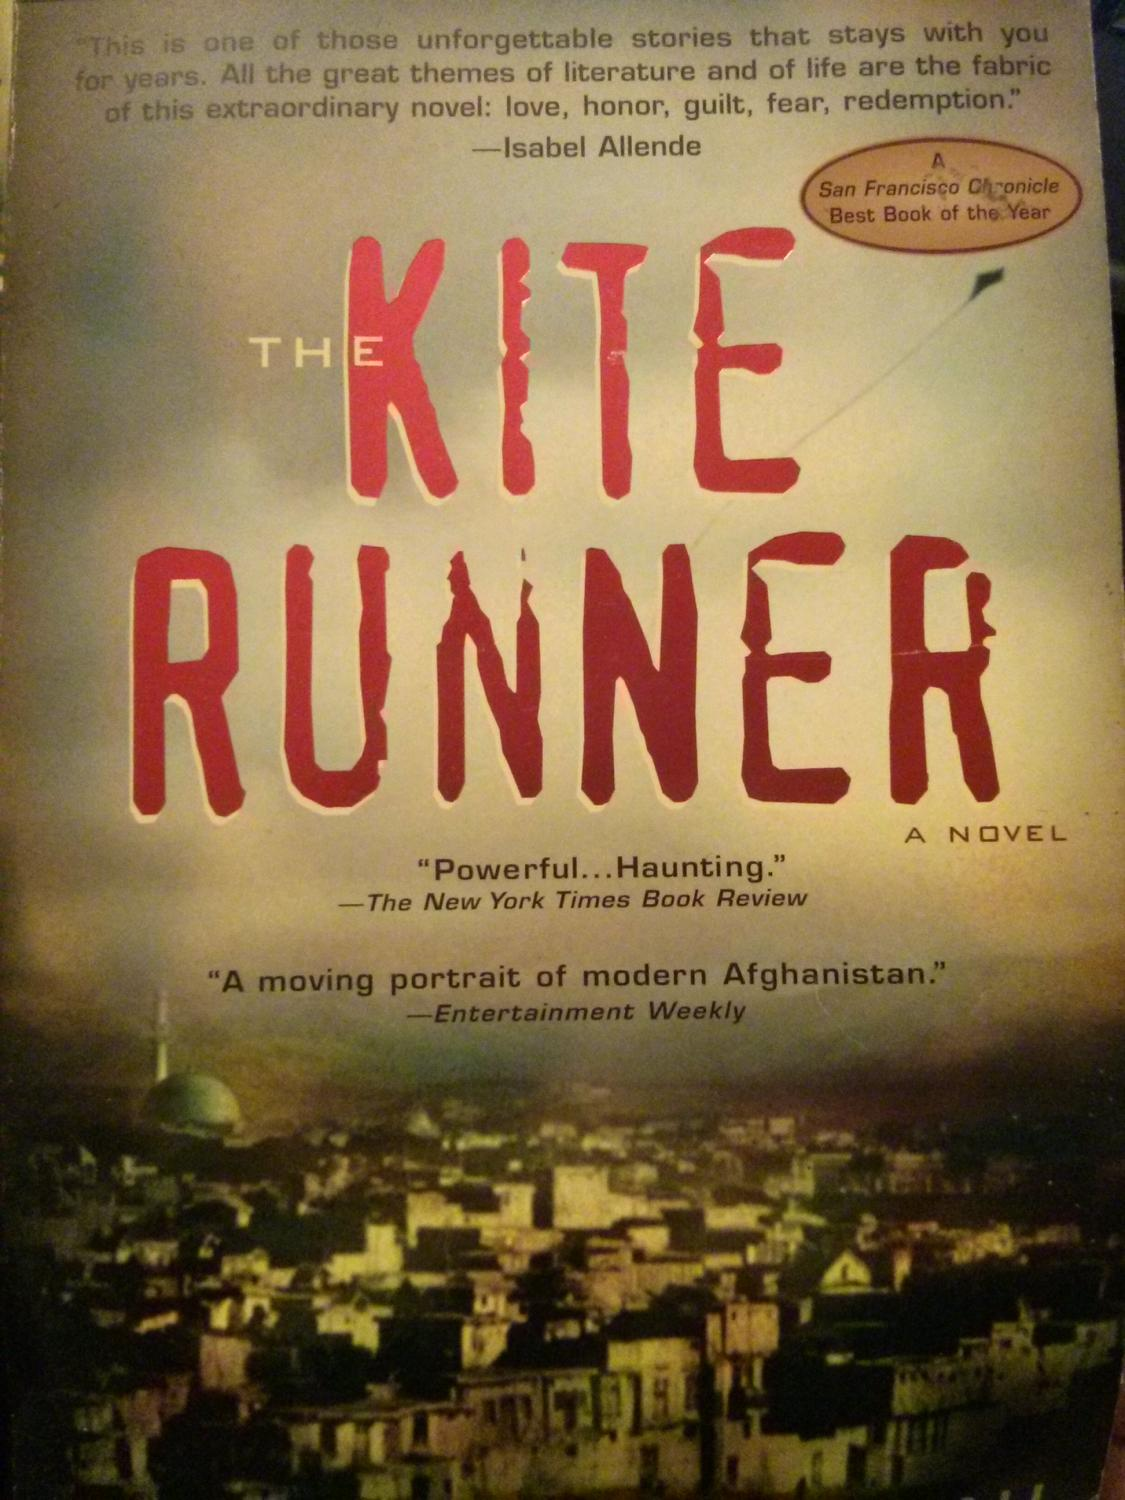 kite runner by hosseini first edition